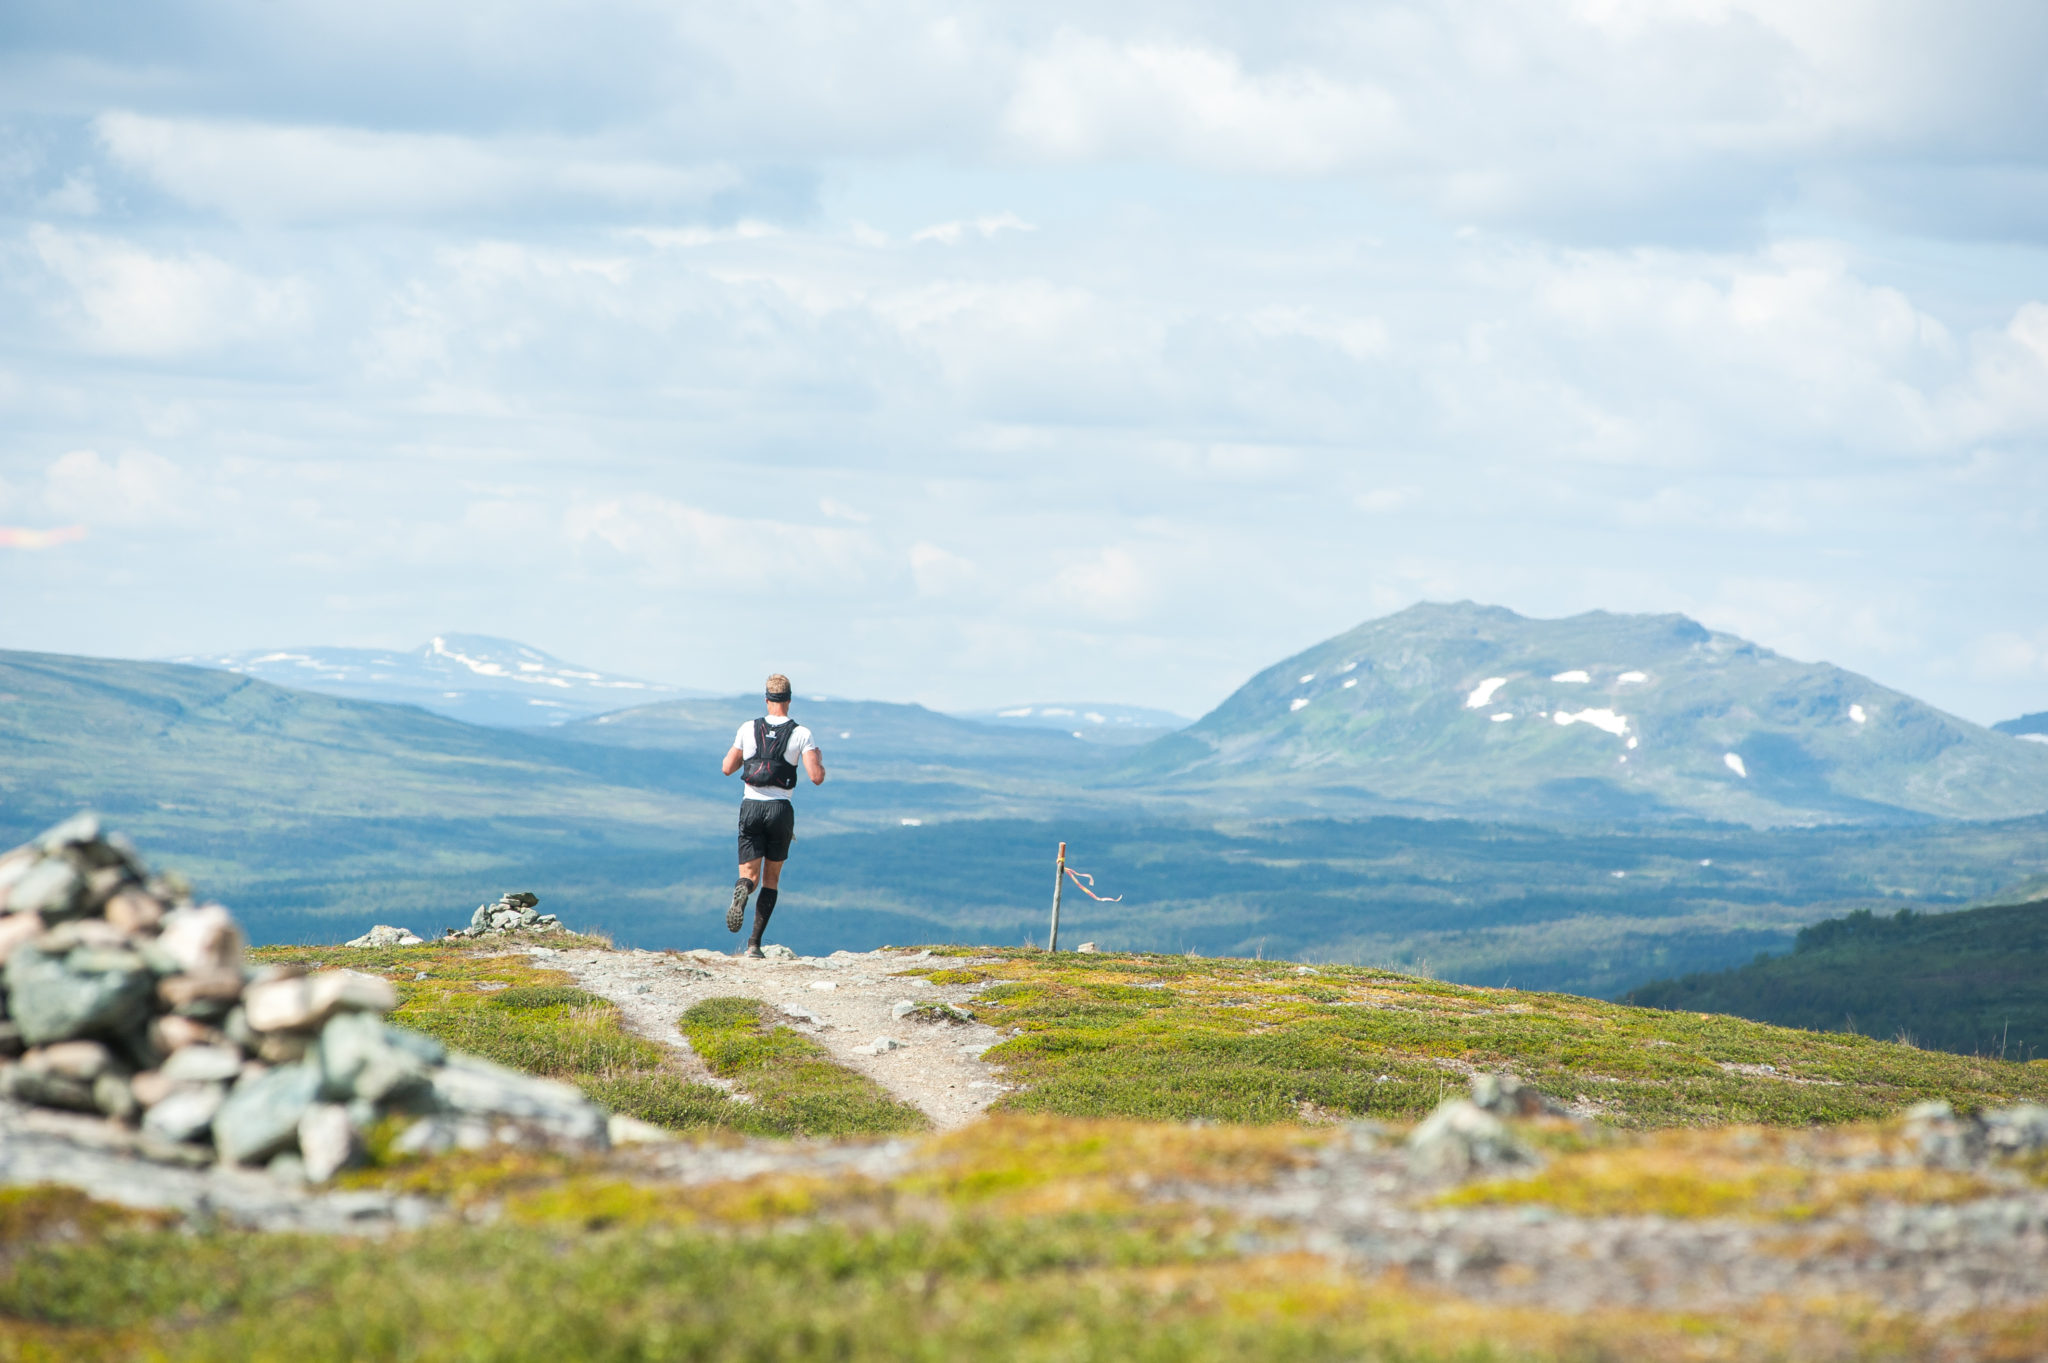 Ramundberget Trail Runner up in the mountains with a great view